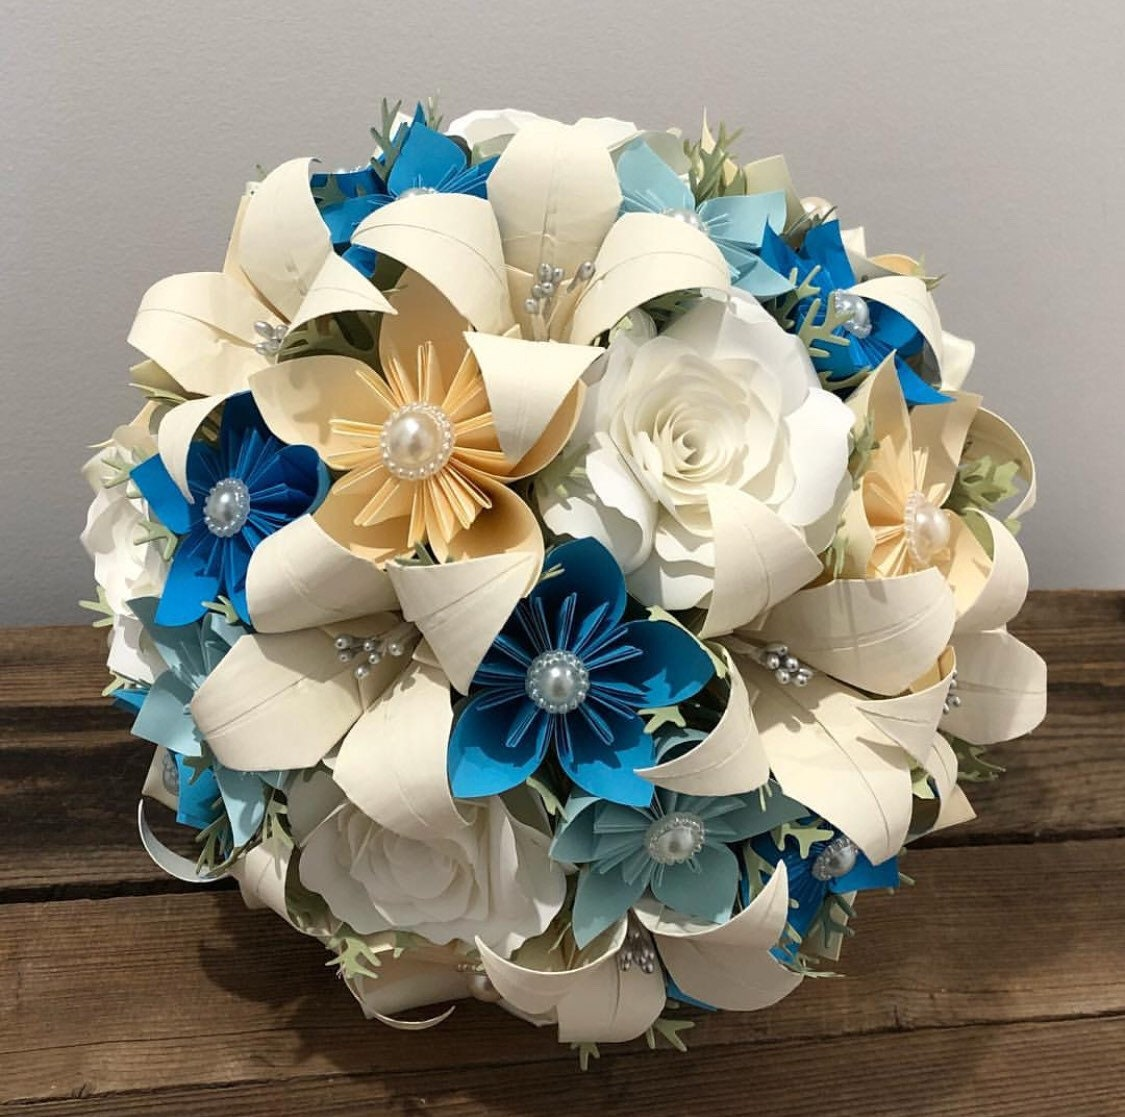 Cream ivory and turquoise flower bouquet handmade paper etsy zoom izmirmasajfo